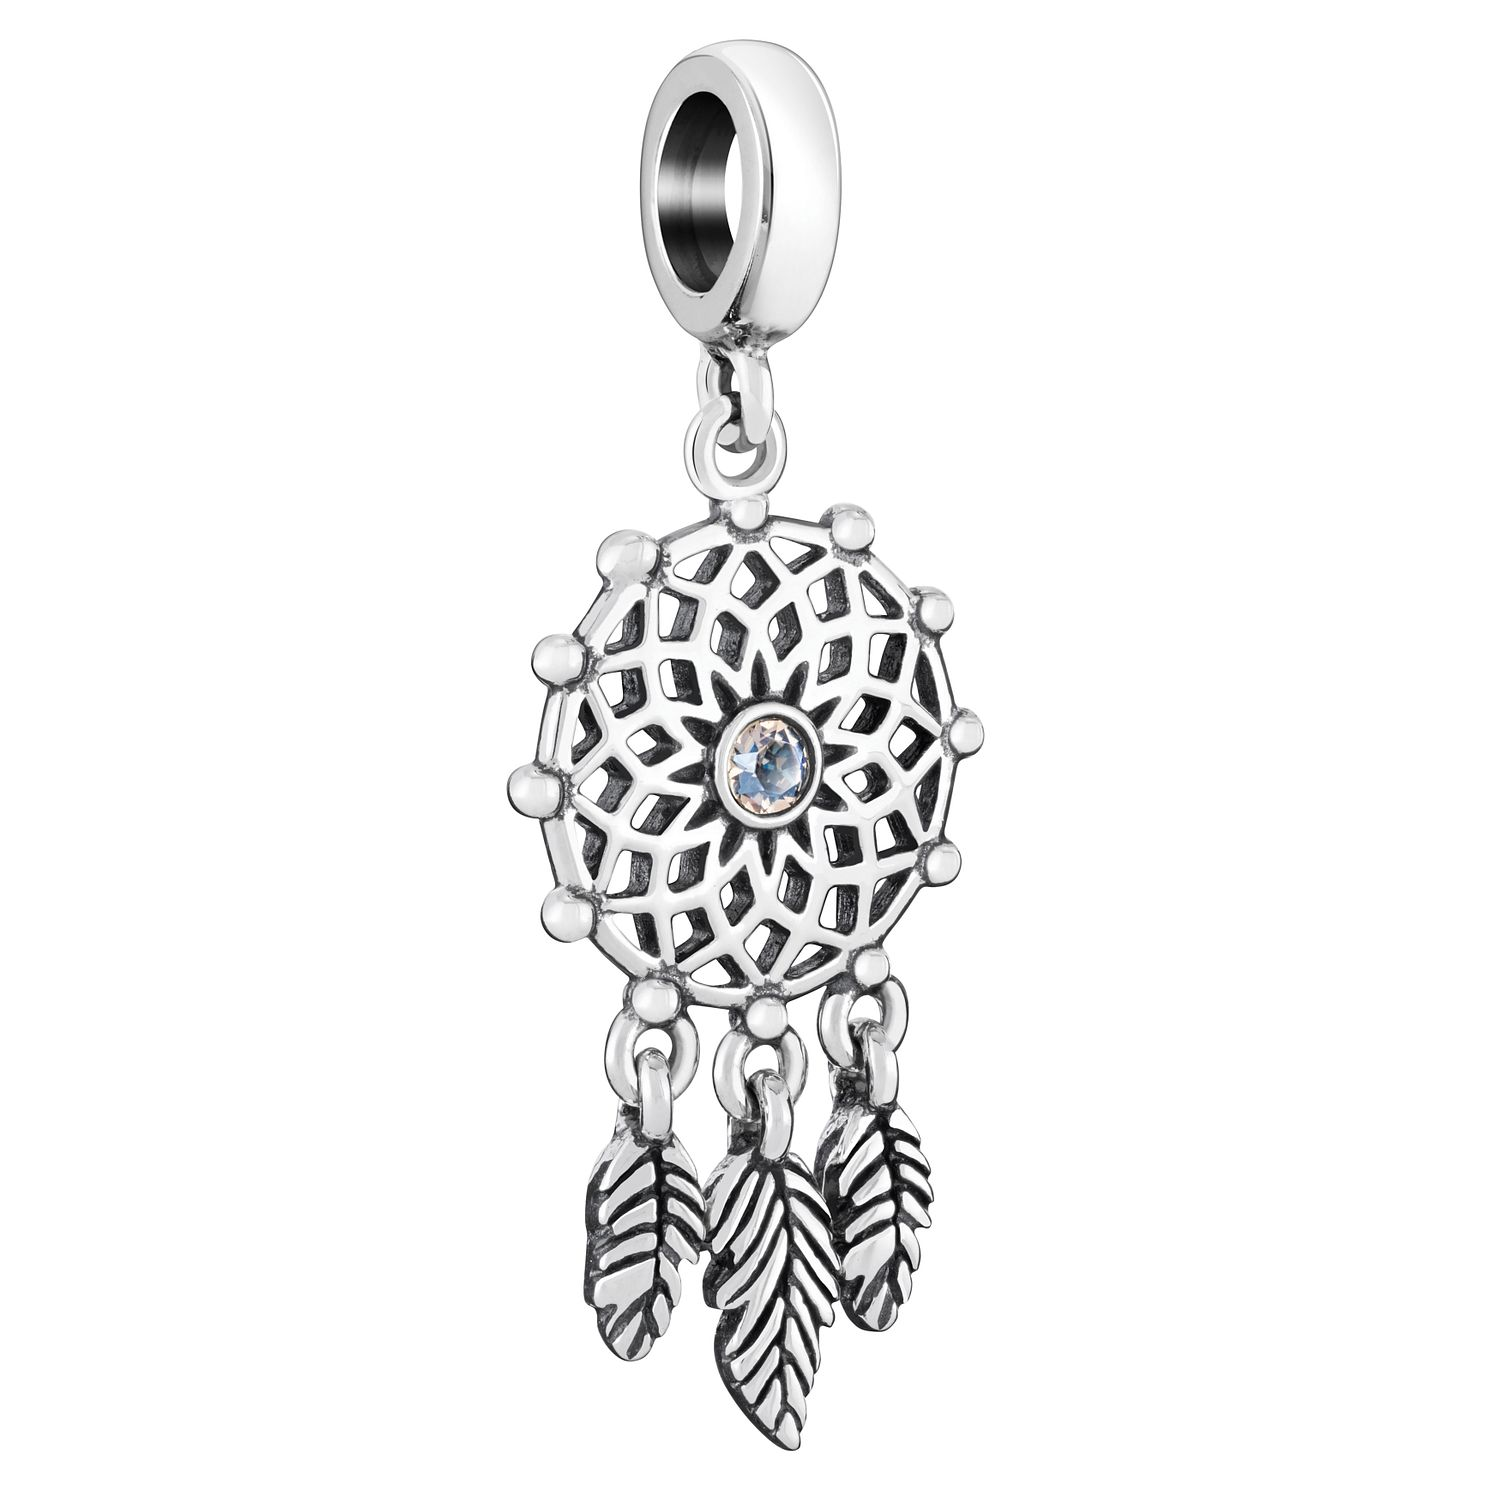 Chamilia Dreamcatcher Charm with Swarovski Crystal - Product number 6893589